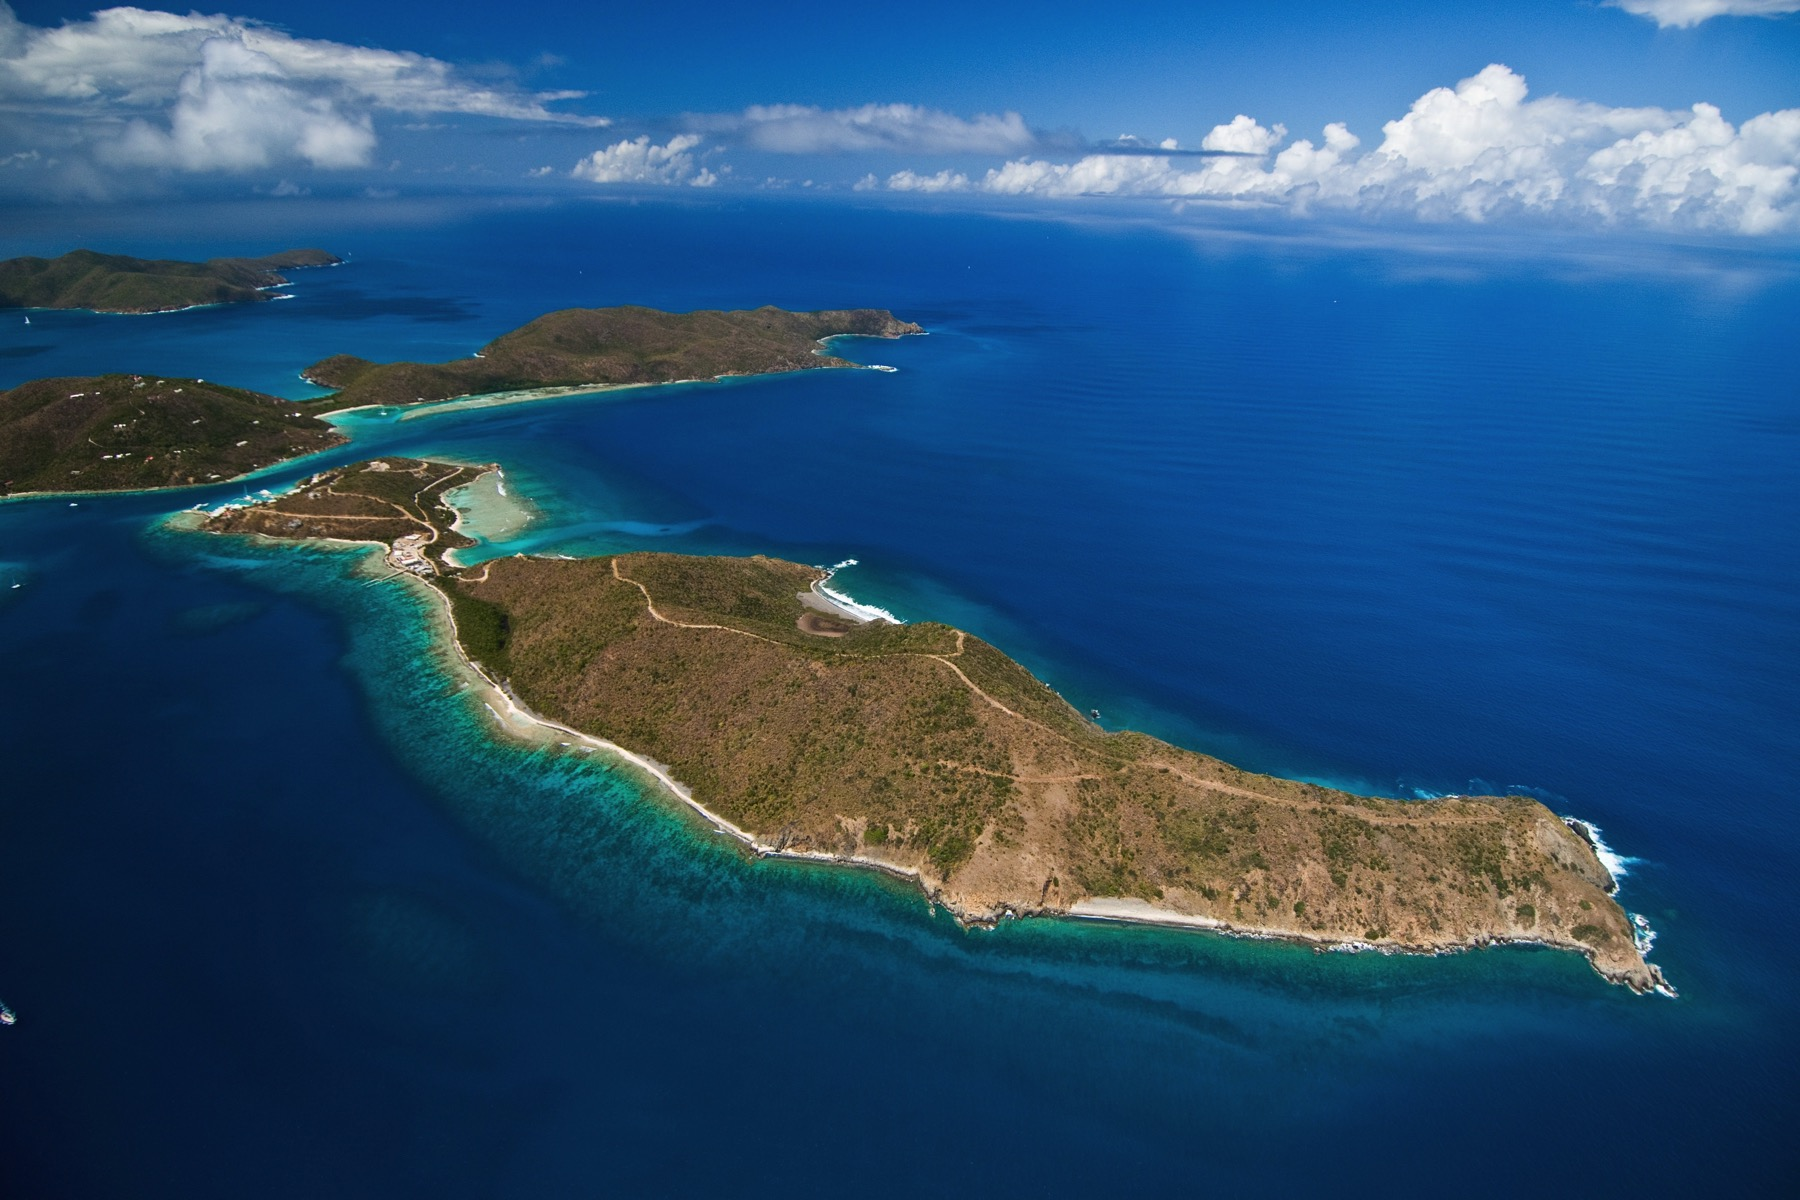 Land for Sale at Big Scrub - Scrub Island Development Big Scrub, Scrub Island British Virgin Islands